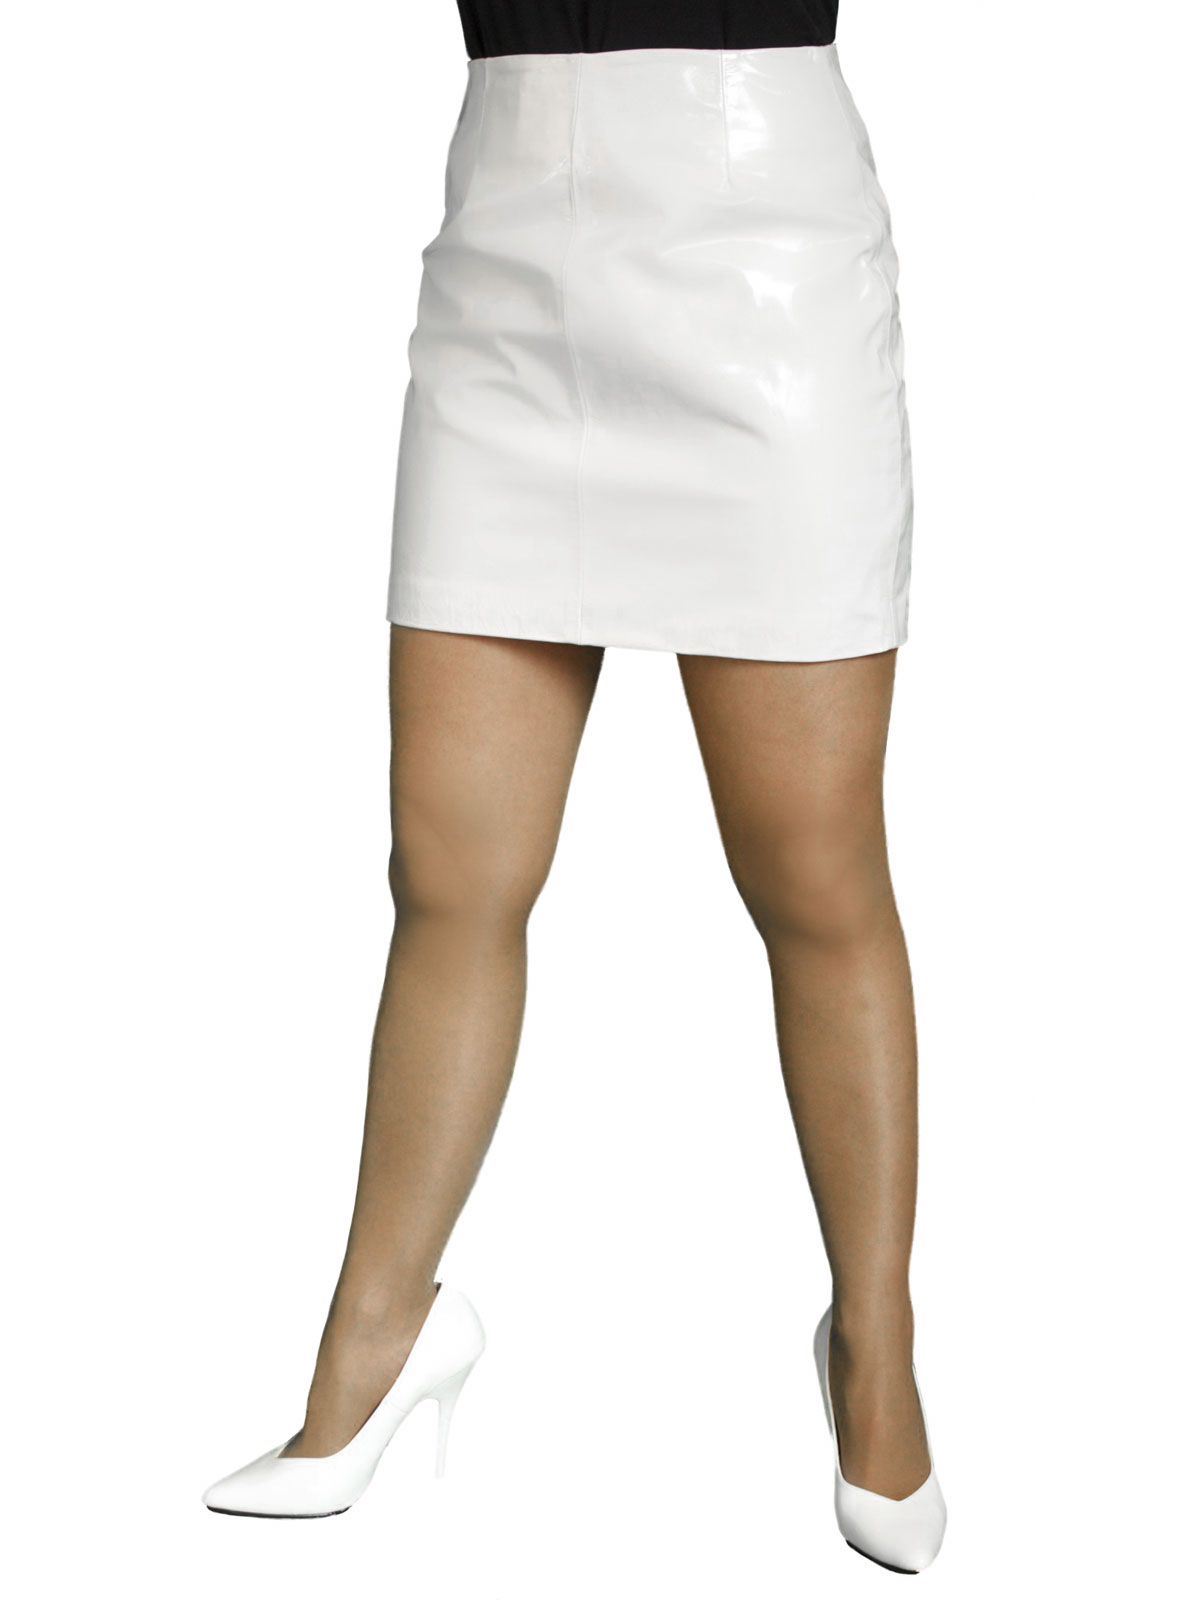 Patent Leather Mini Skirt (Red or White)